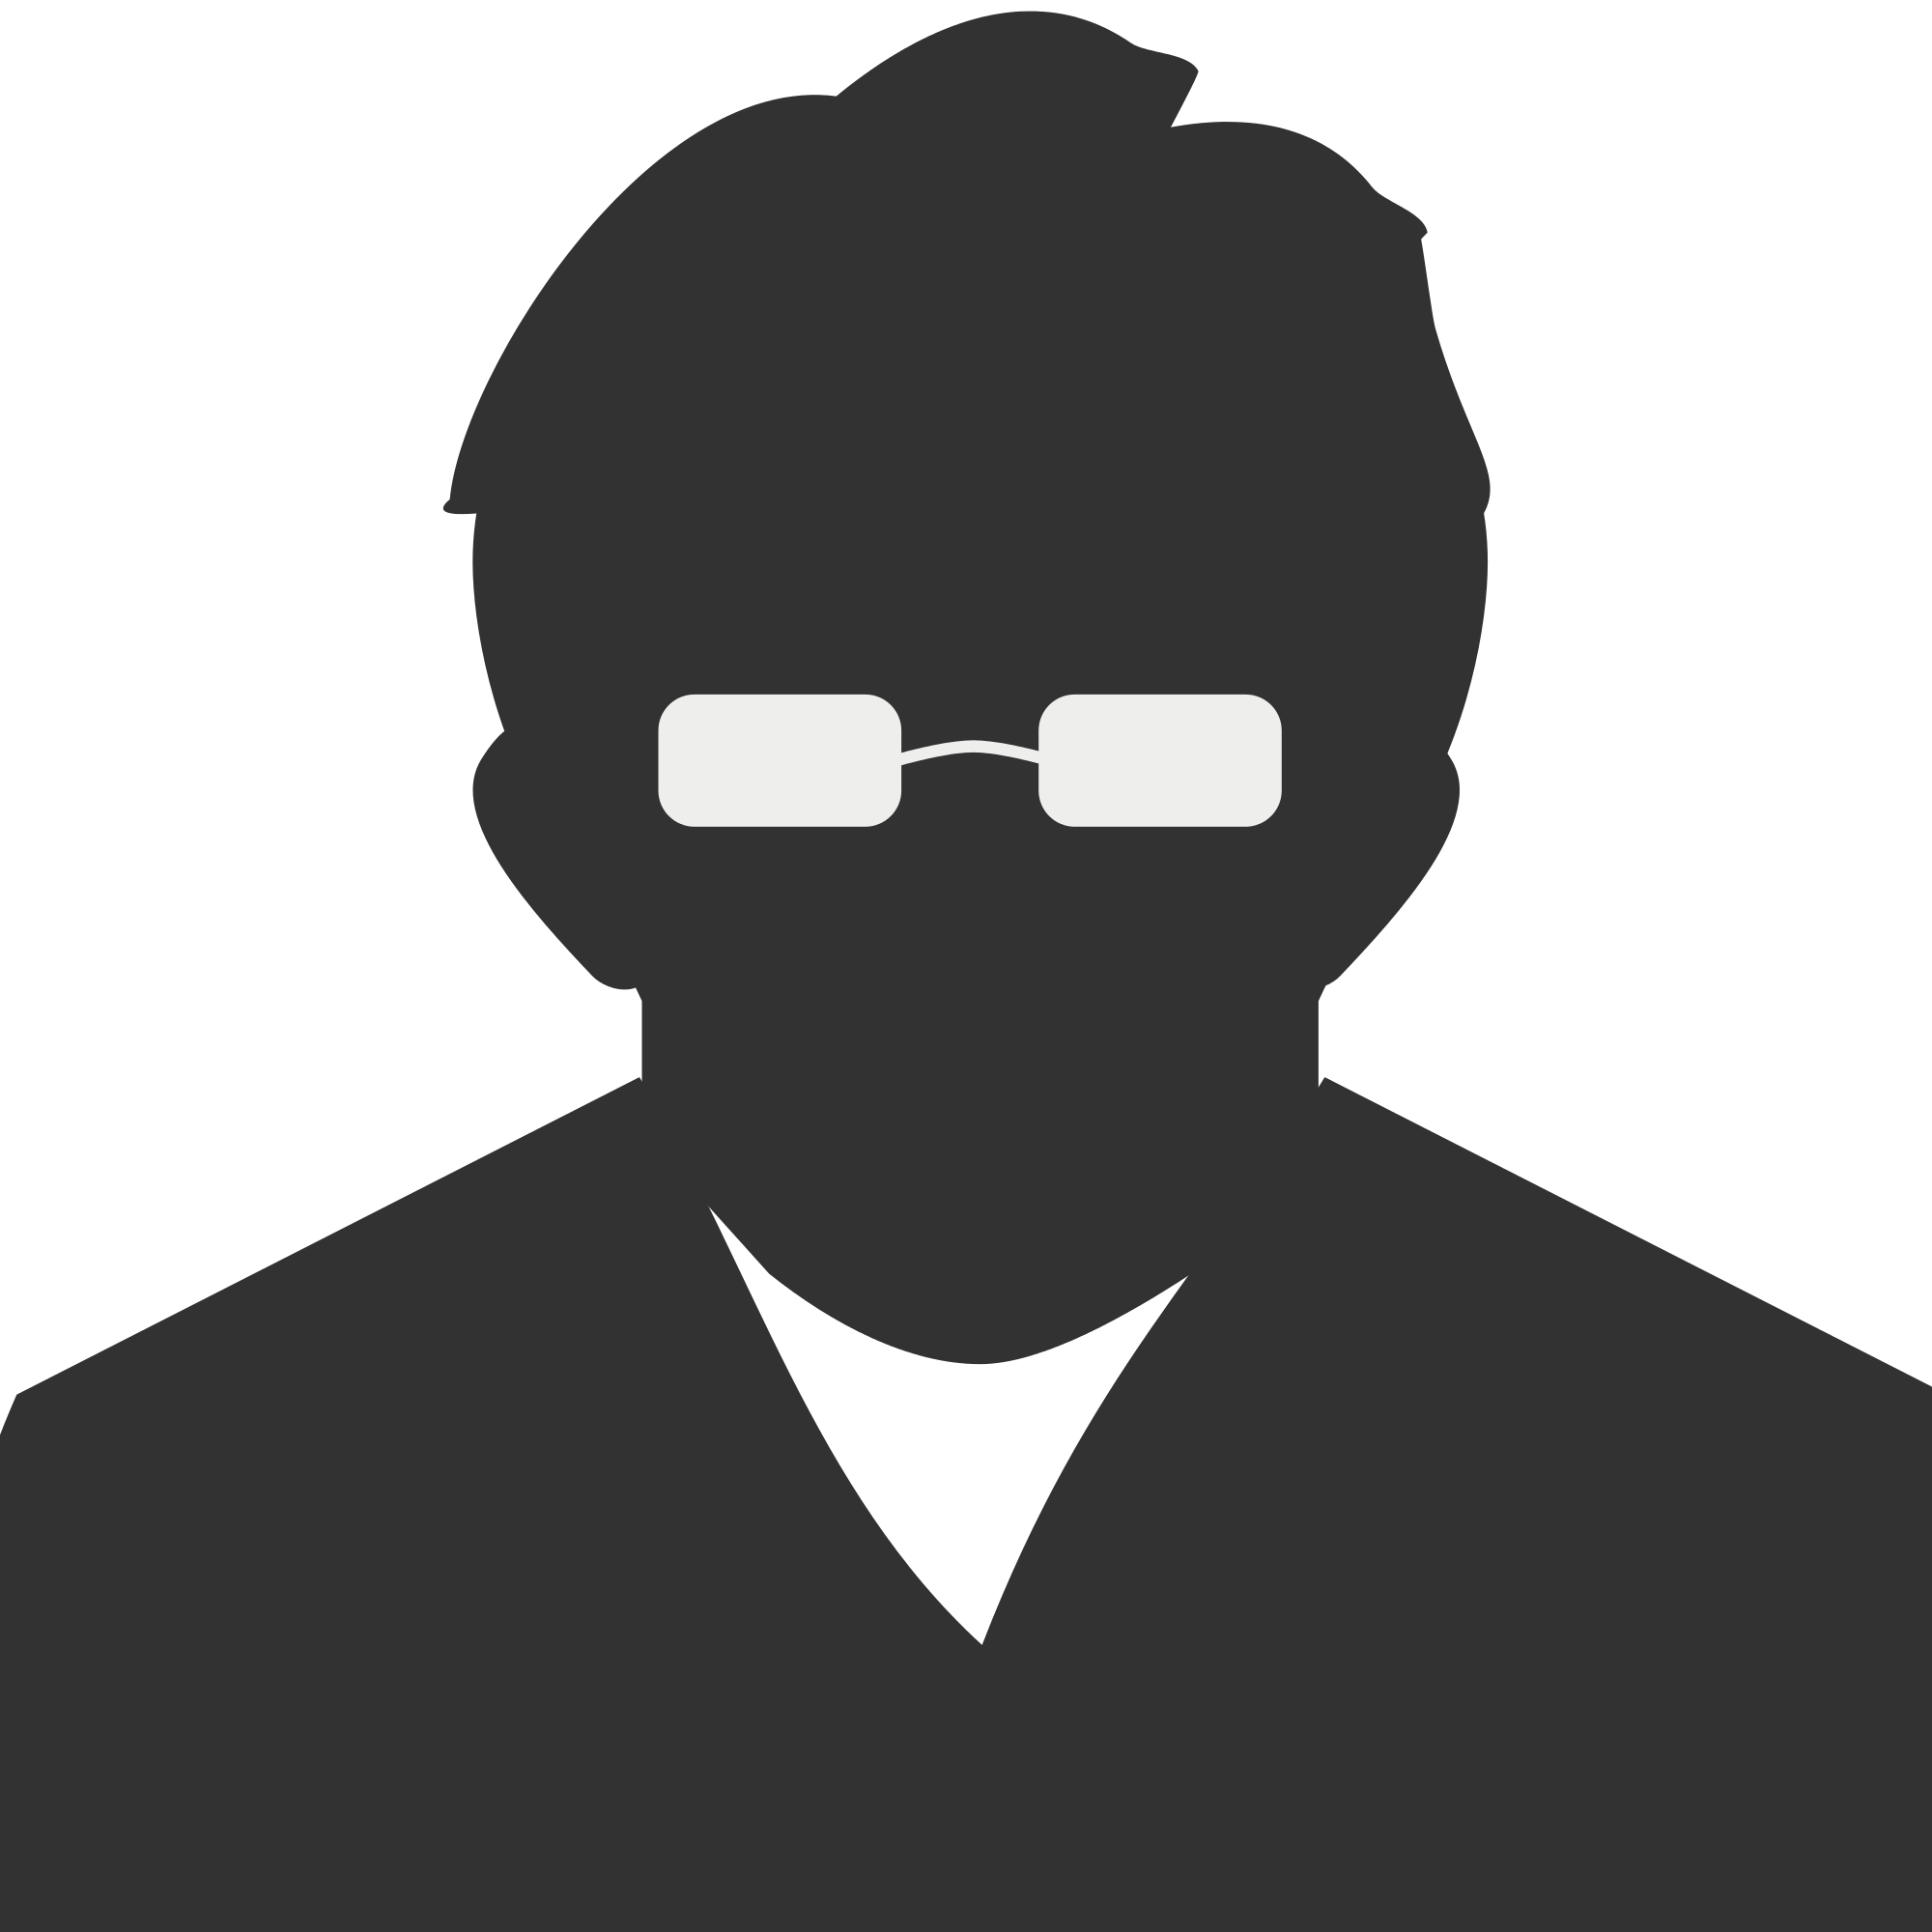 Person svg. File generic wikimedia commons